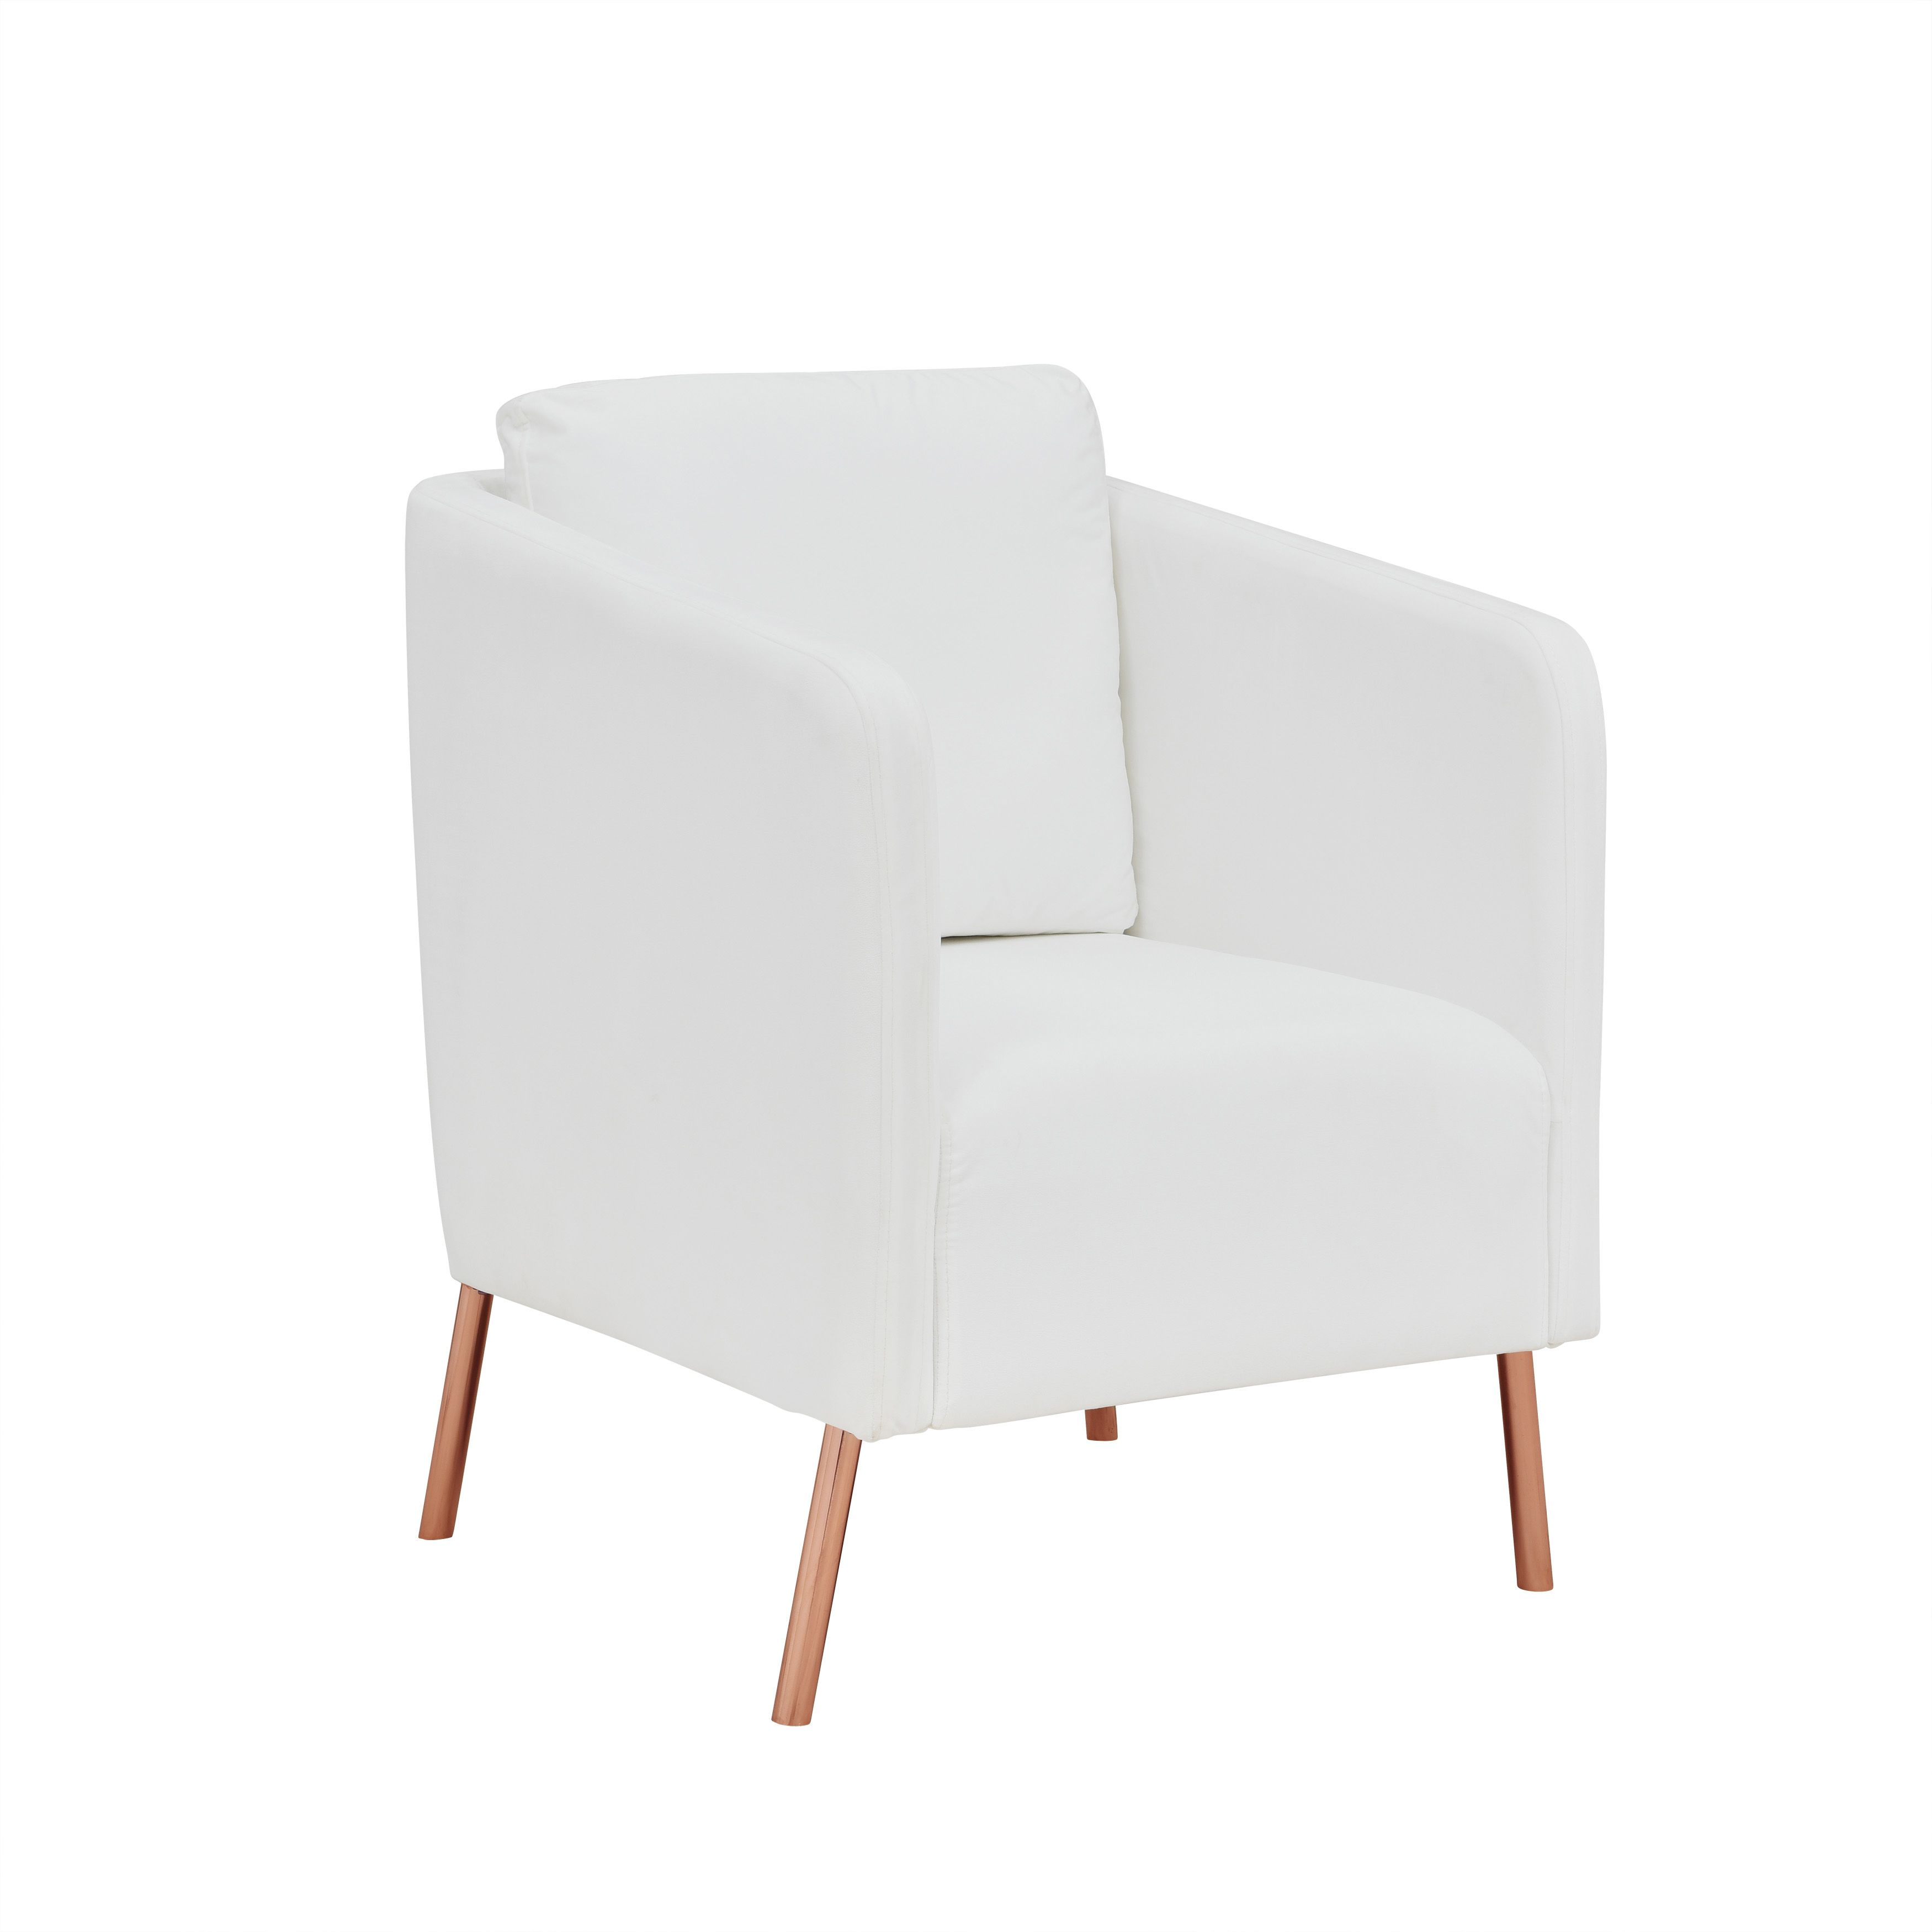 Park Art My WordPress Blog_White Accent Chair With Gold Legs